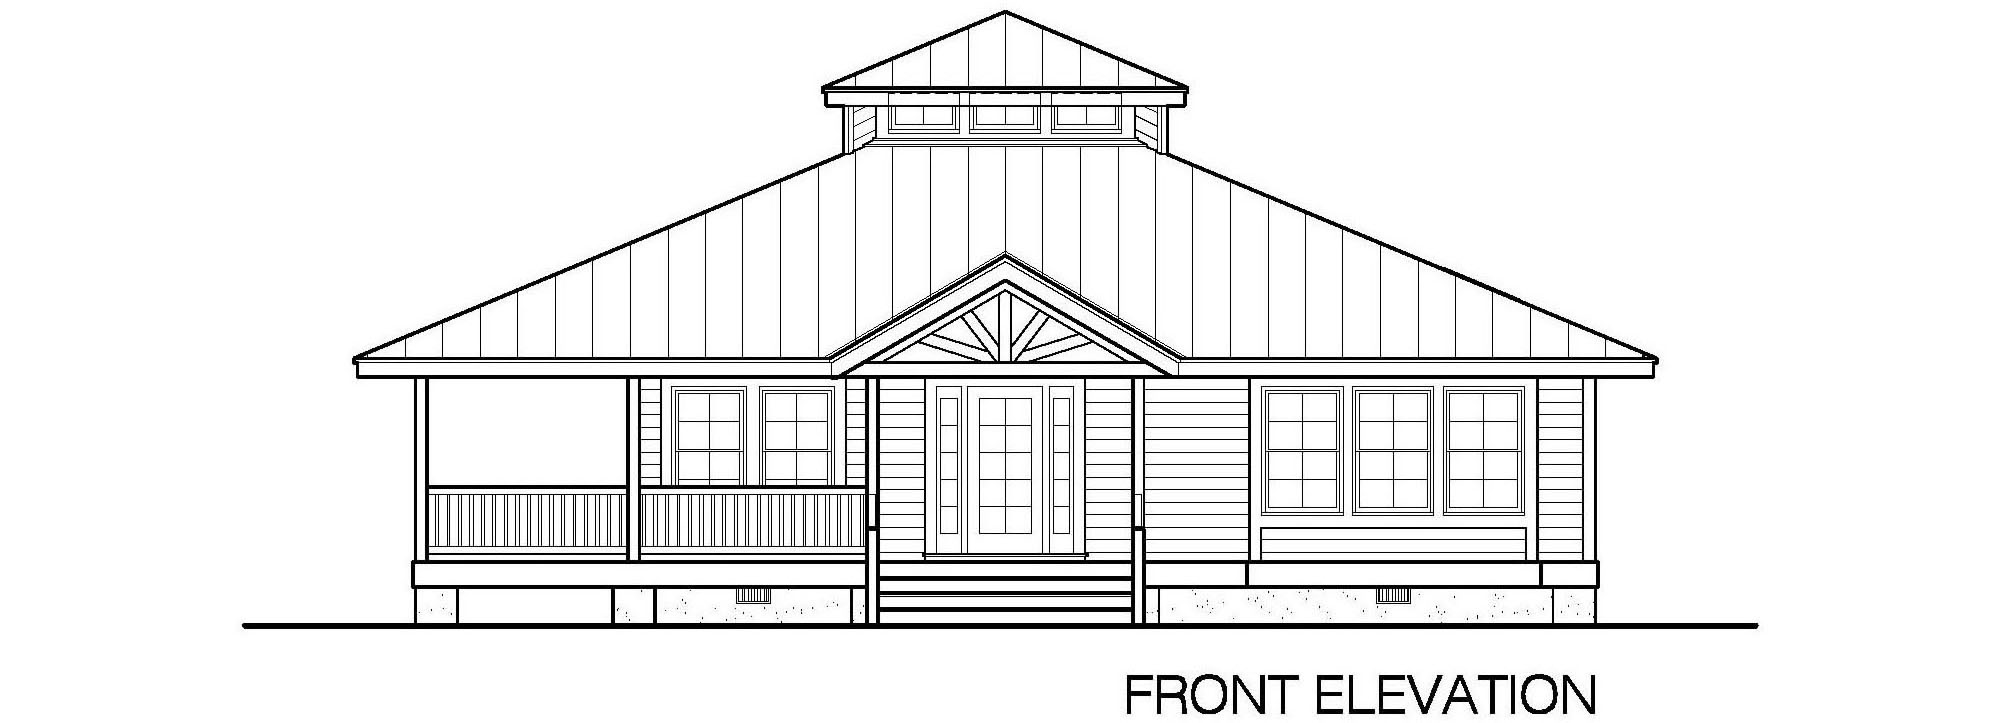 002-Hip-1423-2Bdrm-WAP-2-Front-Elevation Small Southern Home Plans With Separate Garage on home plans with carport, home plans with fireplace, home plans with porches detached garages, home plans with family room, home plans with laundry, home plans with 4 bedrooms, home plans with conservatory, home plans with den, home plans with barn,